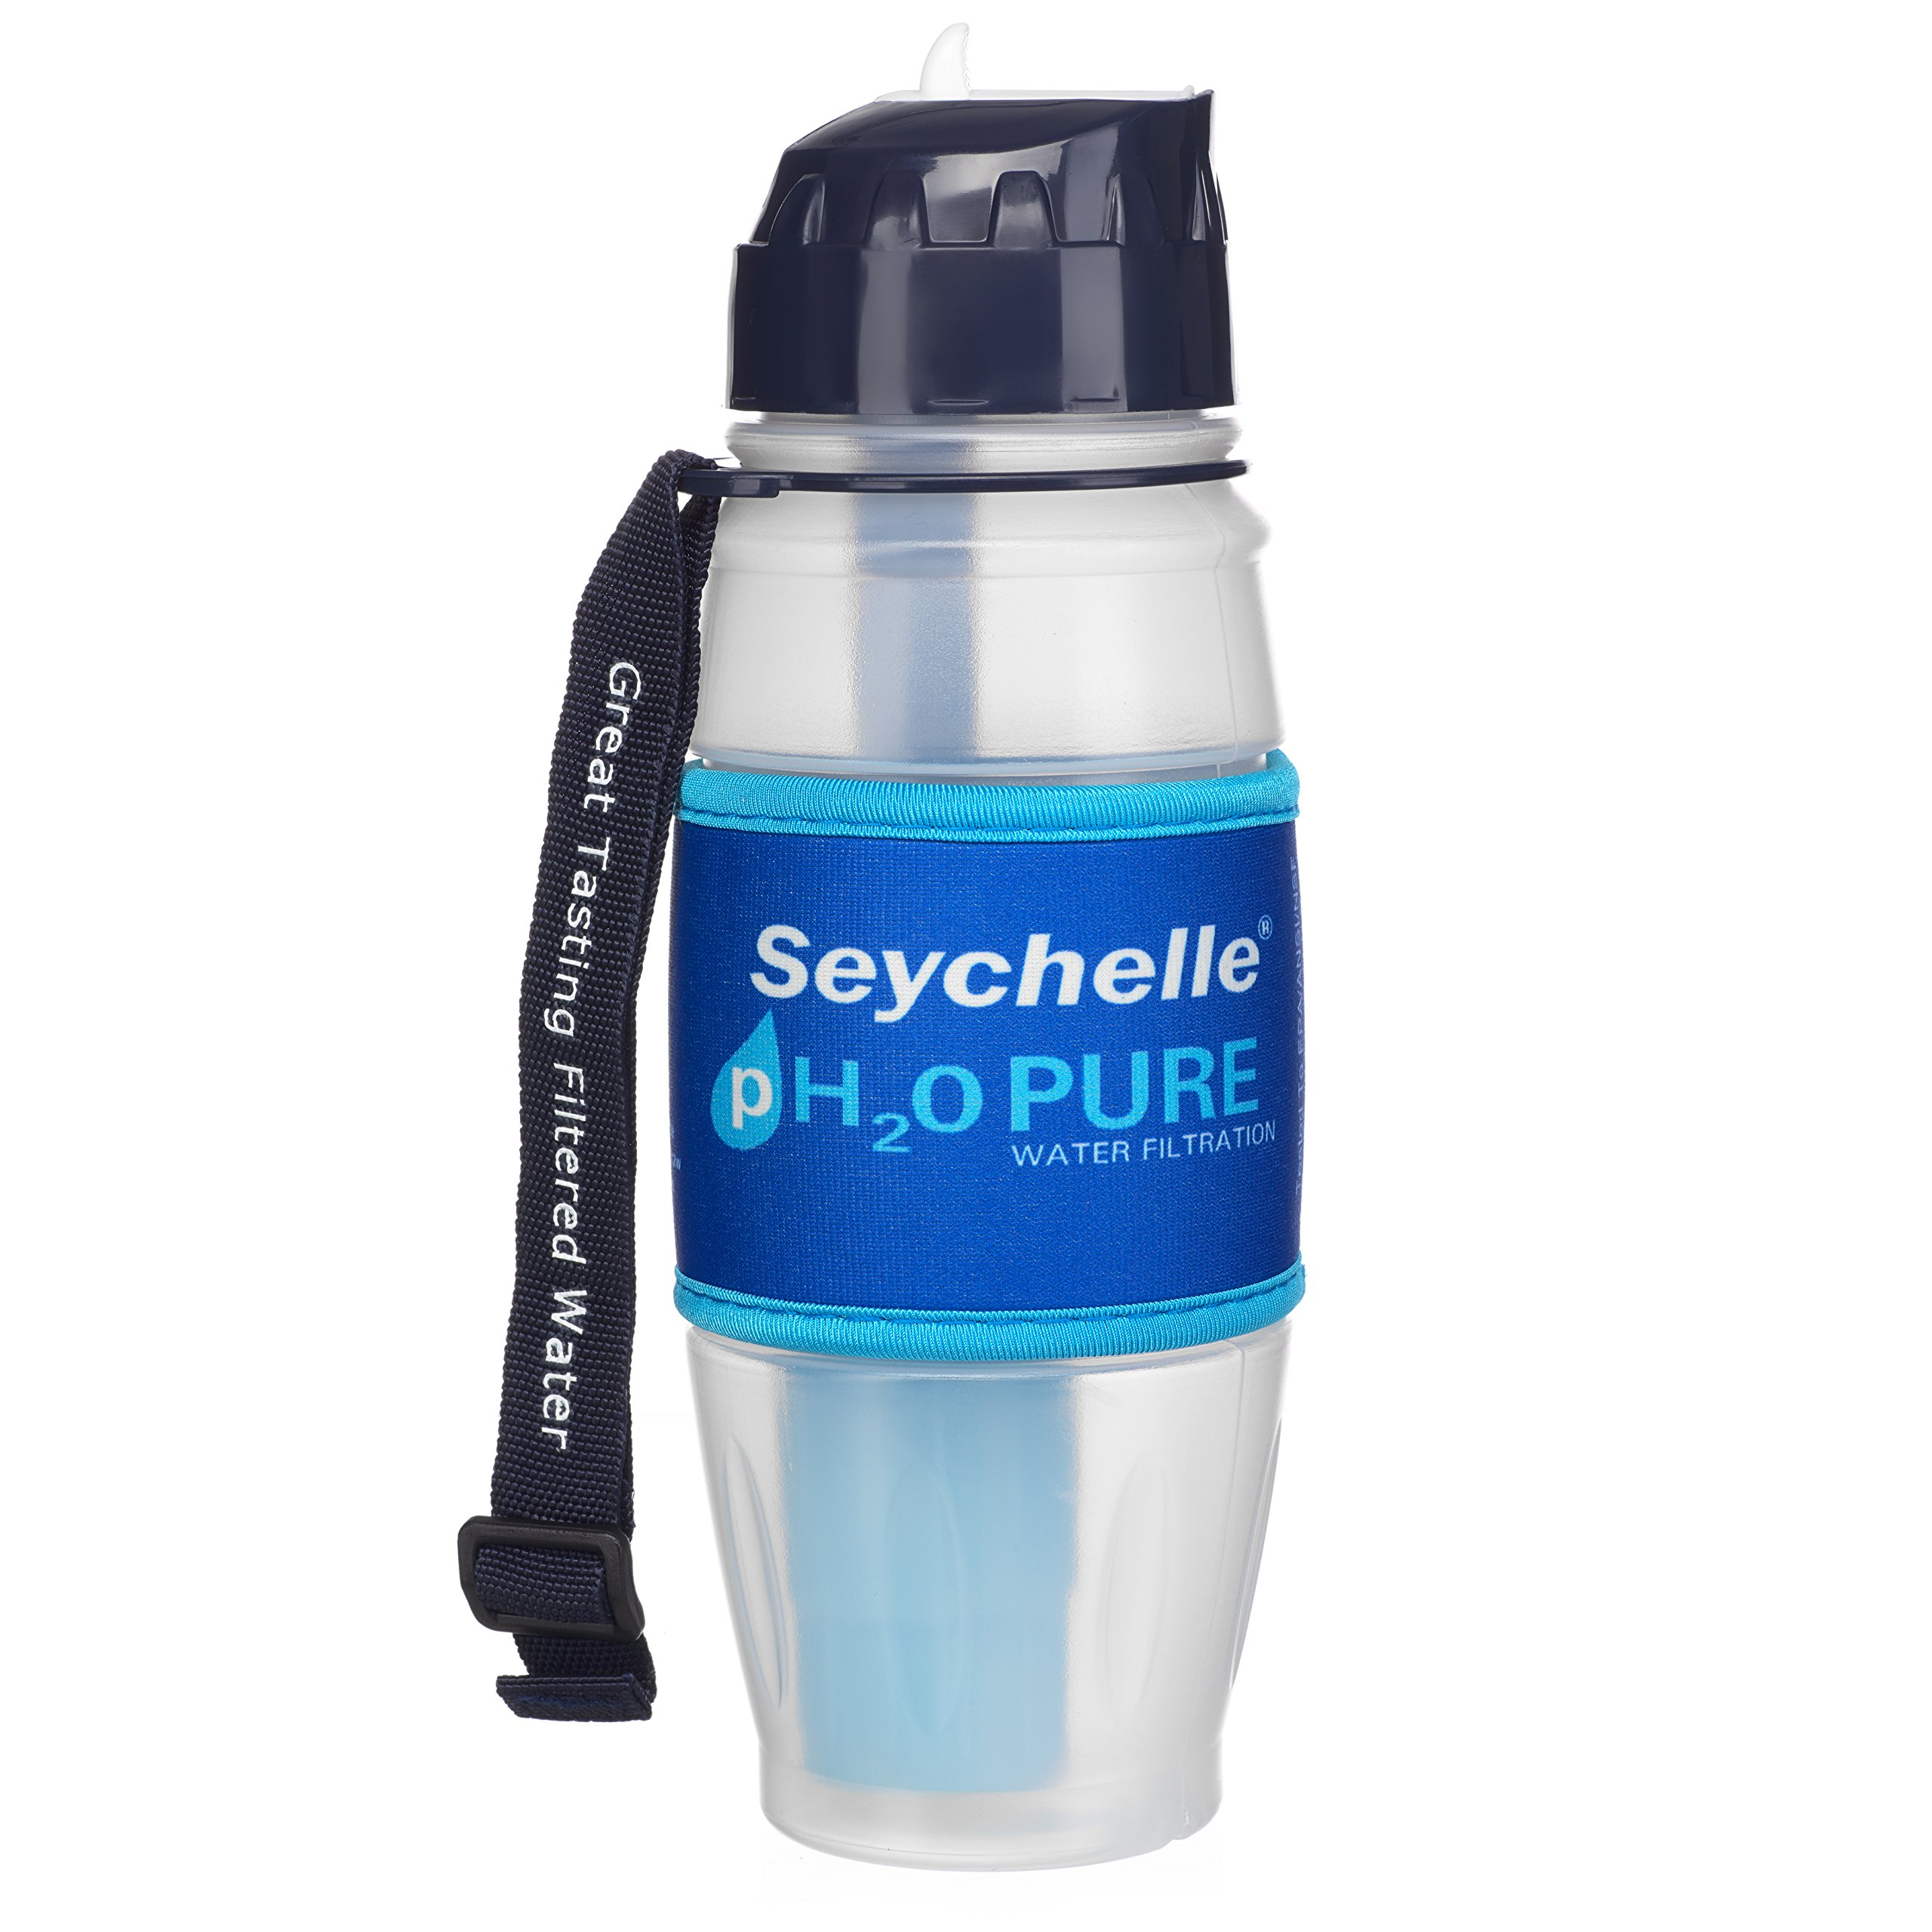 Seychelle pH2O Alkaline Water Filter Bottle - Enhances pH and Filters Water - BPA Free - 28 oz